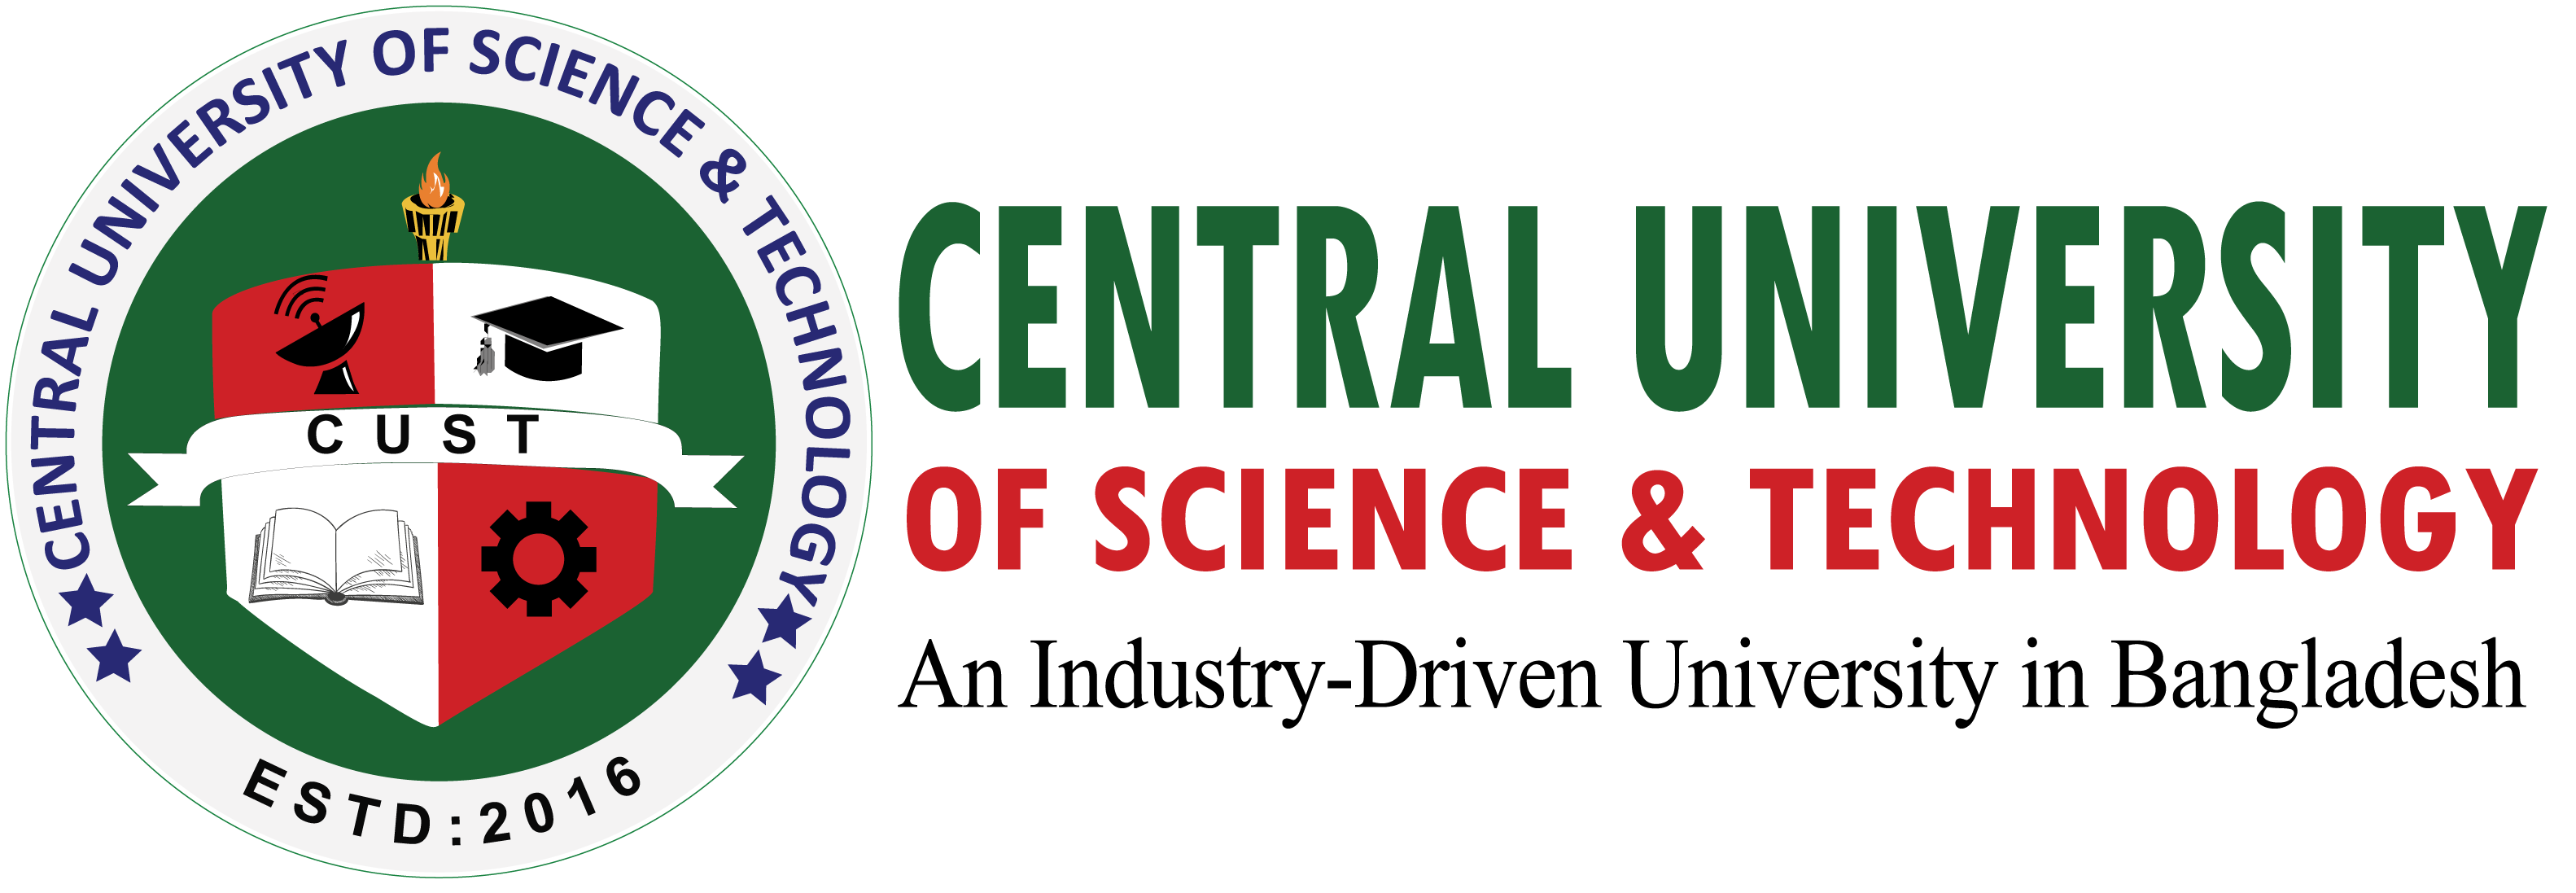 Message From The Founder & BoT Chairman - Central University of Science & Technology